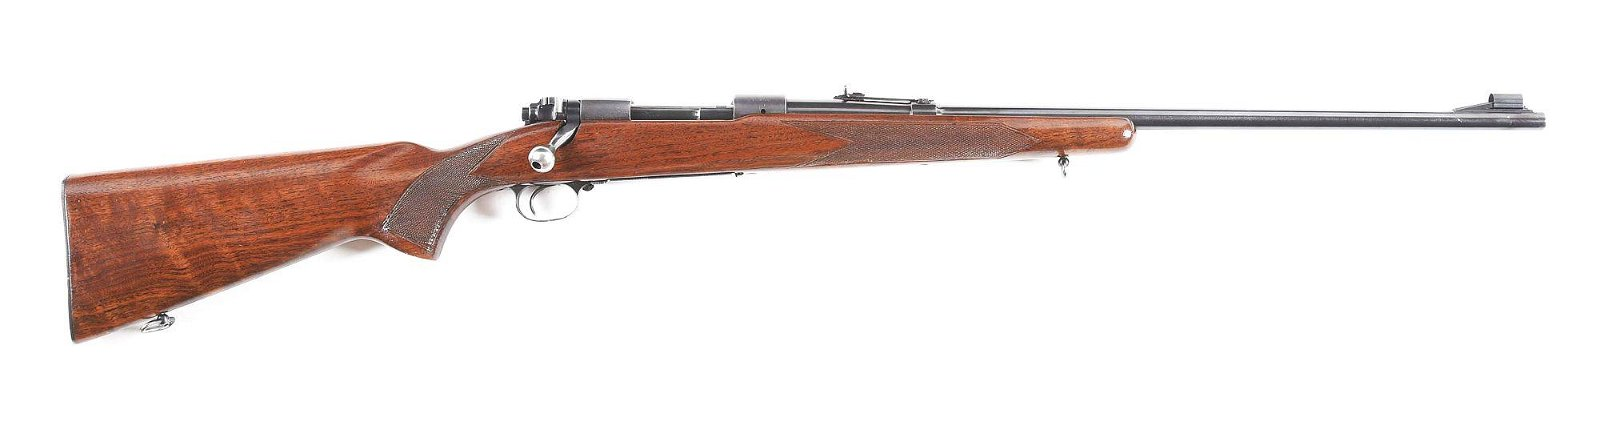 (C) WINCHESTER 70 BOLT ACTION RIFLE.